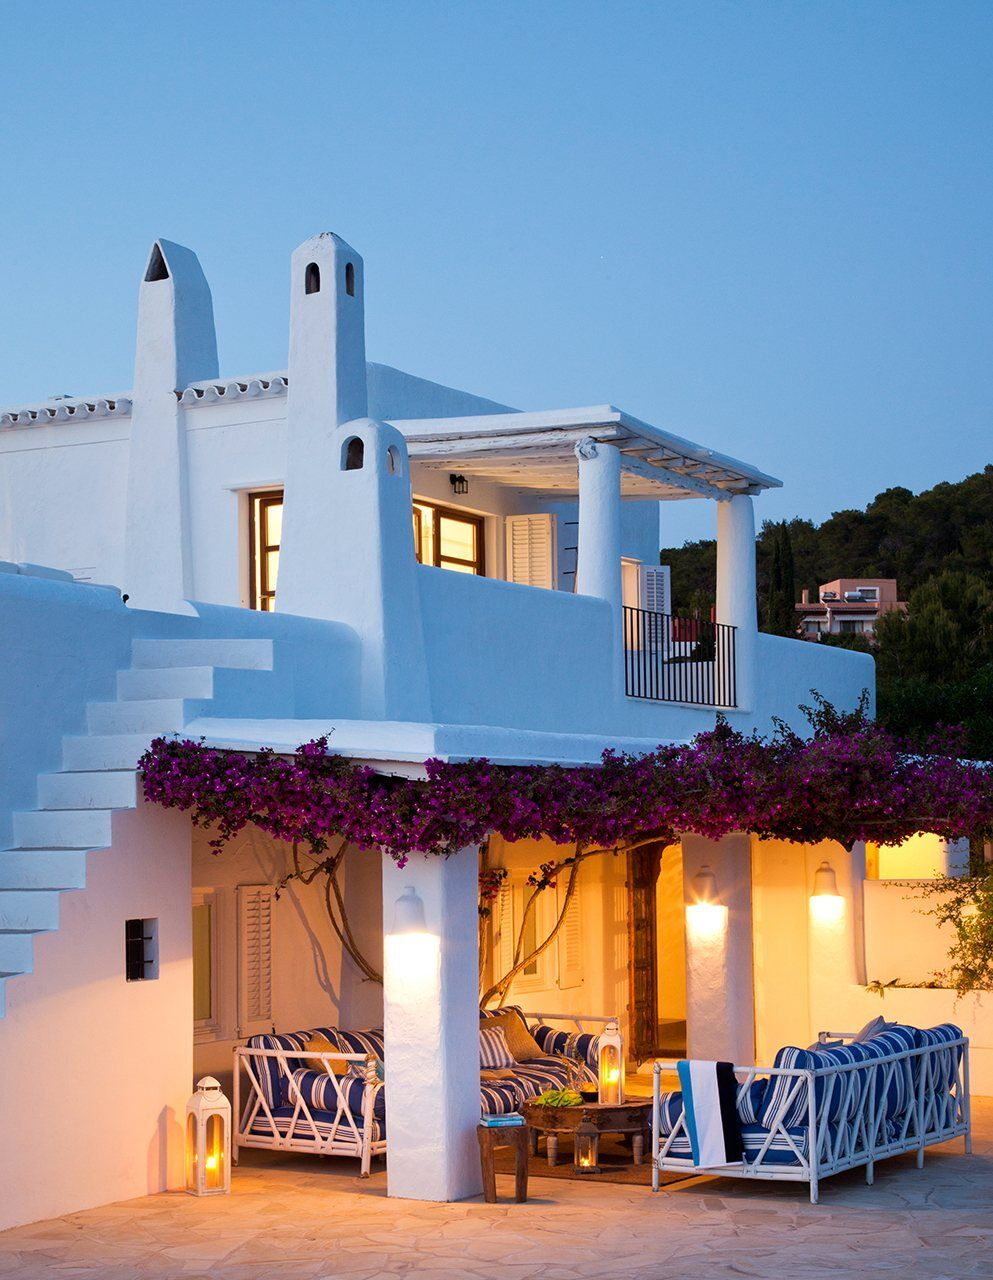 Coastal Decor and Traditional Architecture Under Mediterranean Breeze